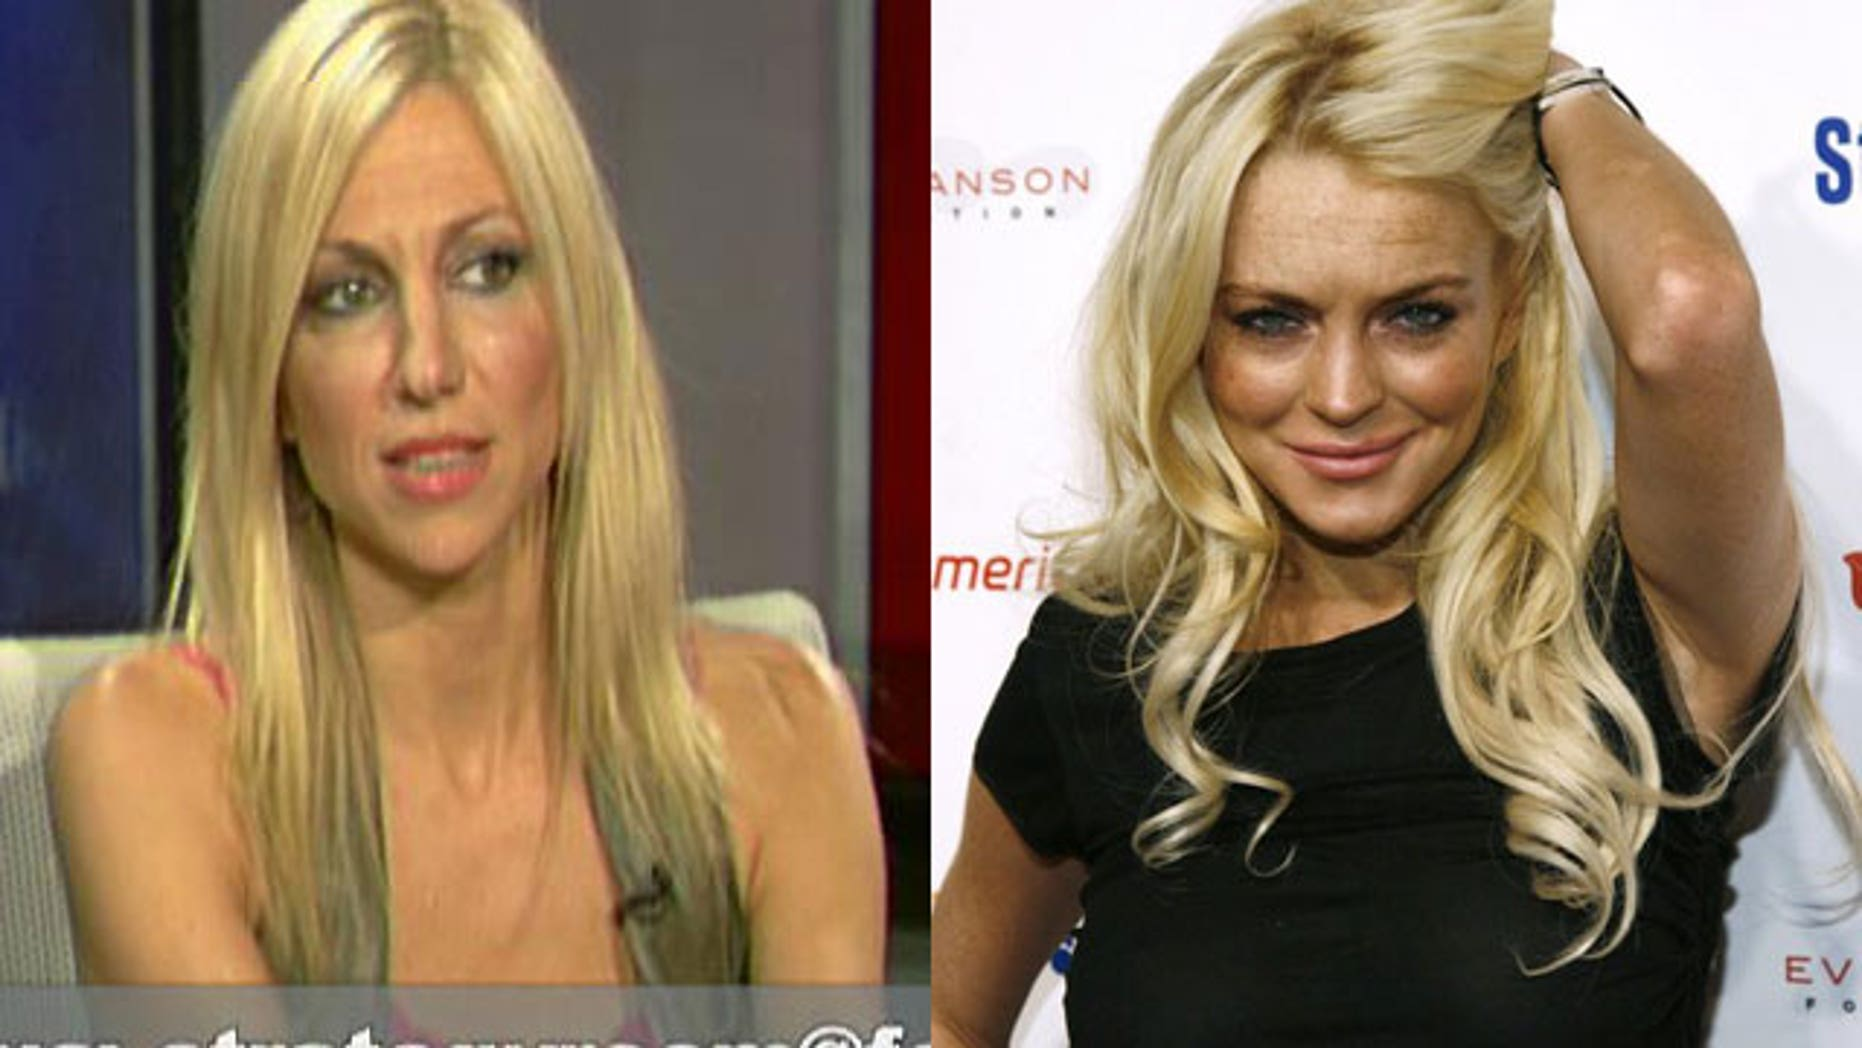 Debbie Gibson (L) says a strong foundation kept her out of trouble, unlike actress Lindsay Lohan.